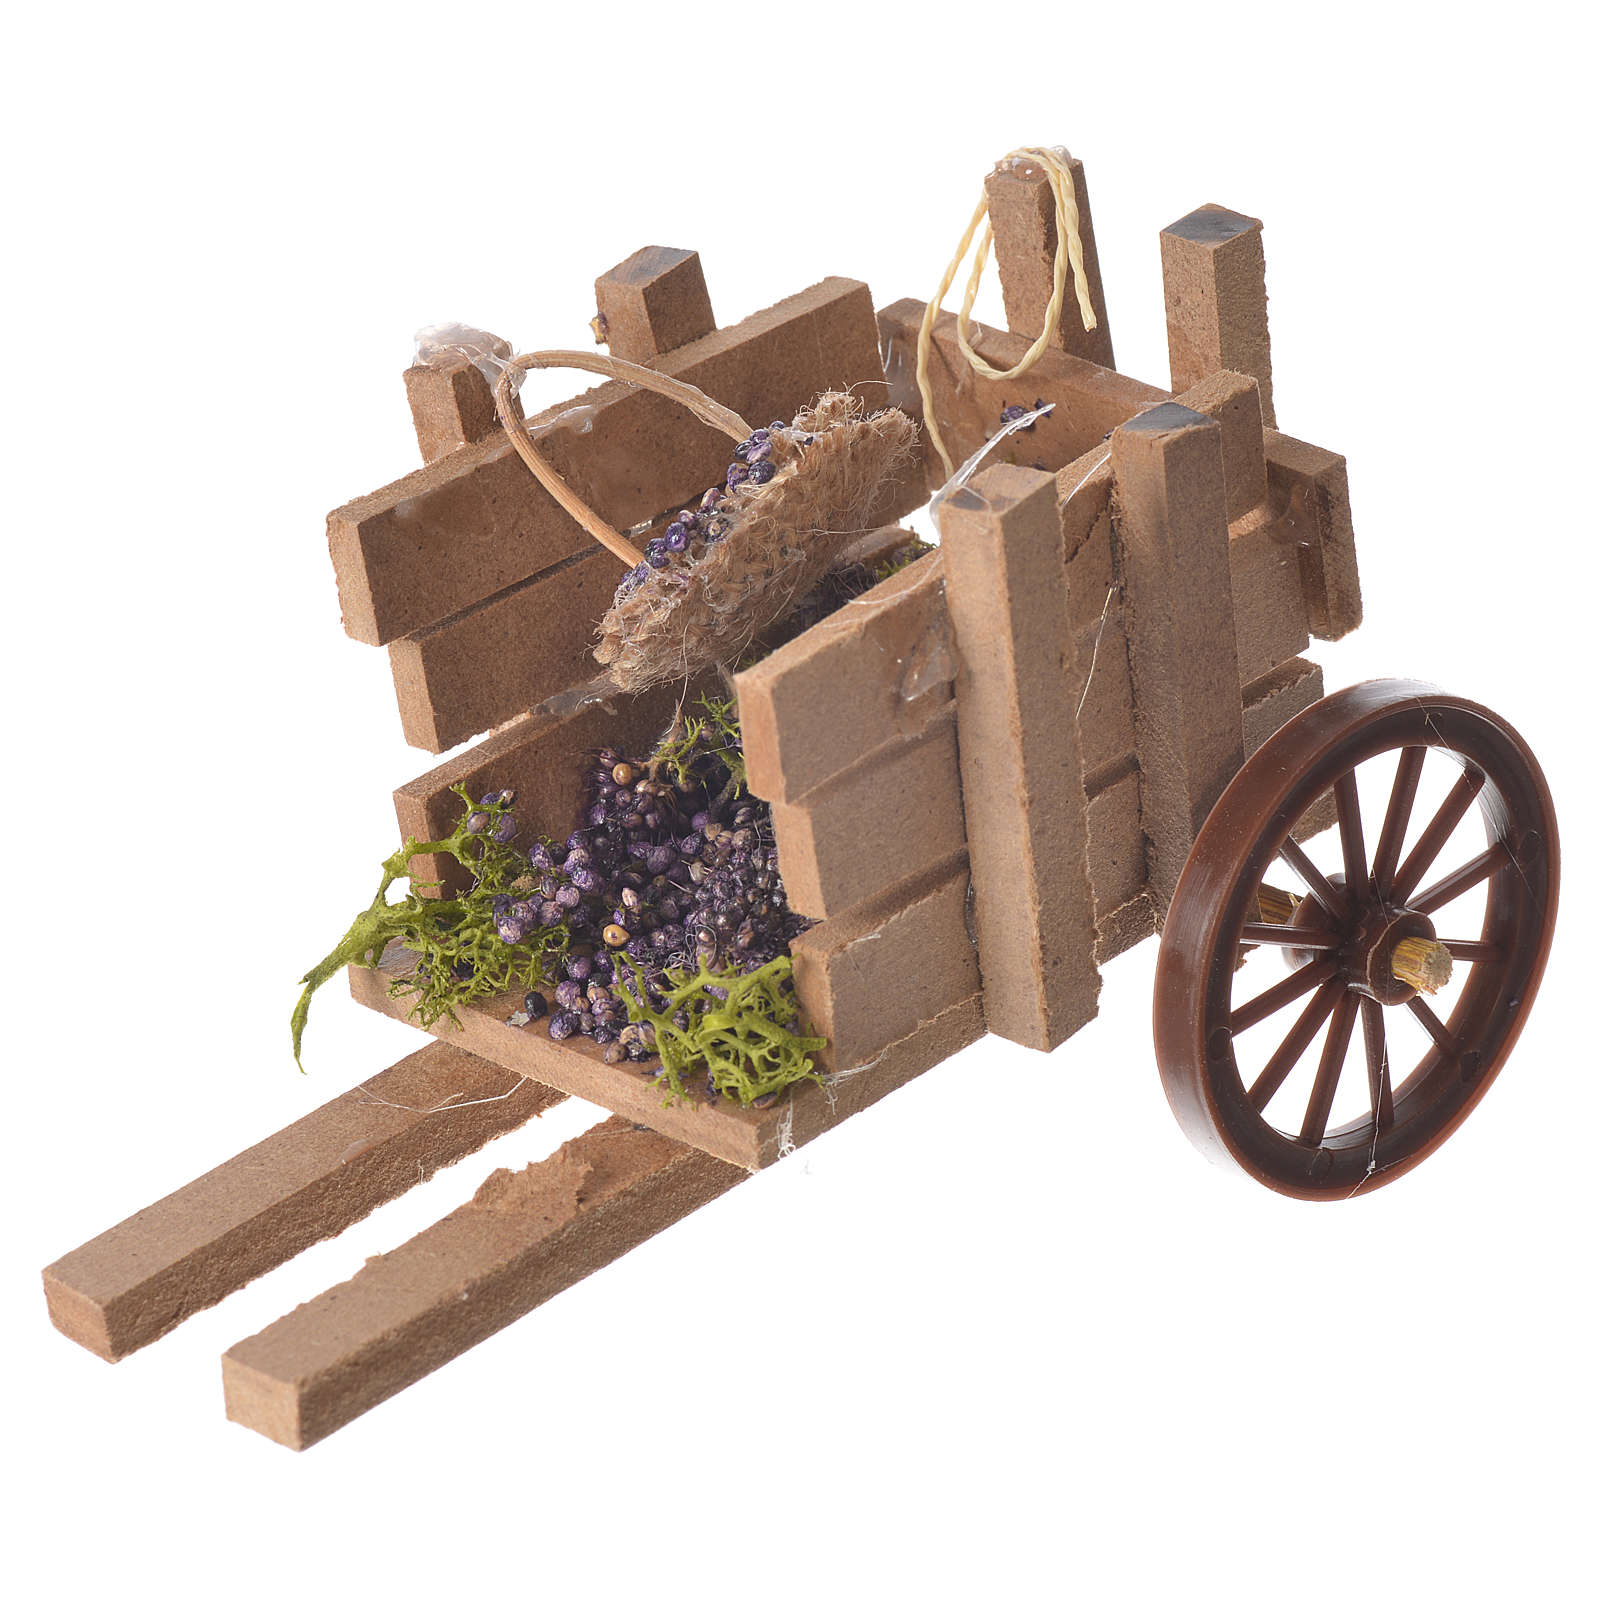 Cart with grapes in wax, nativity accessory 10x12x8cm 4